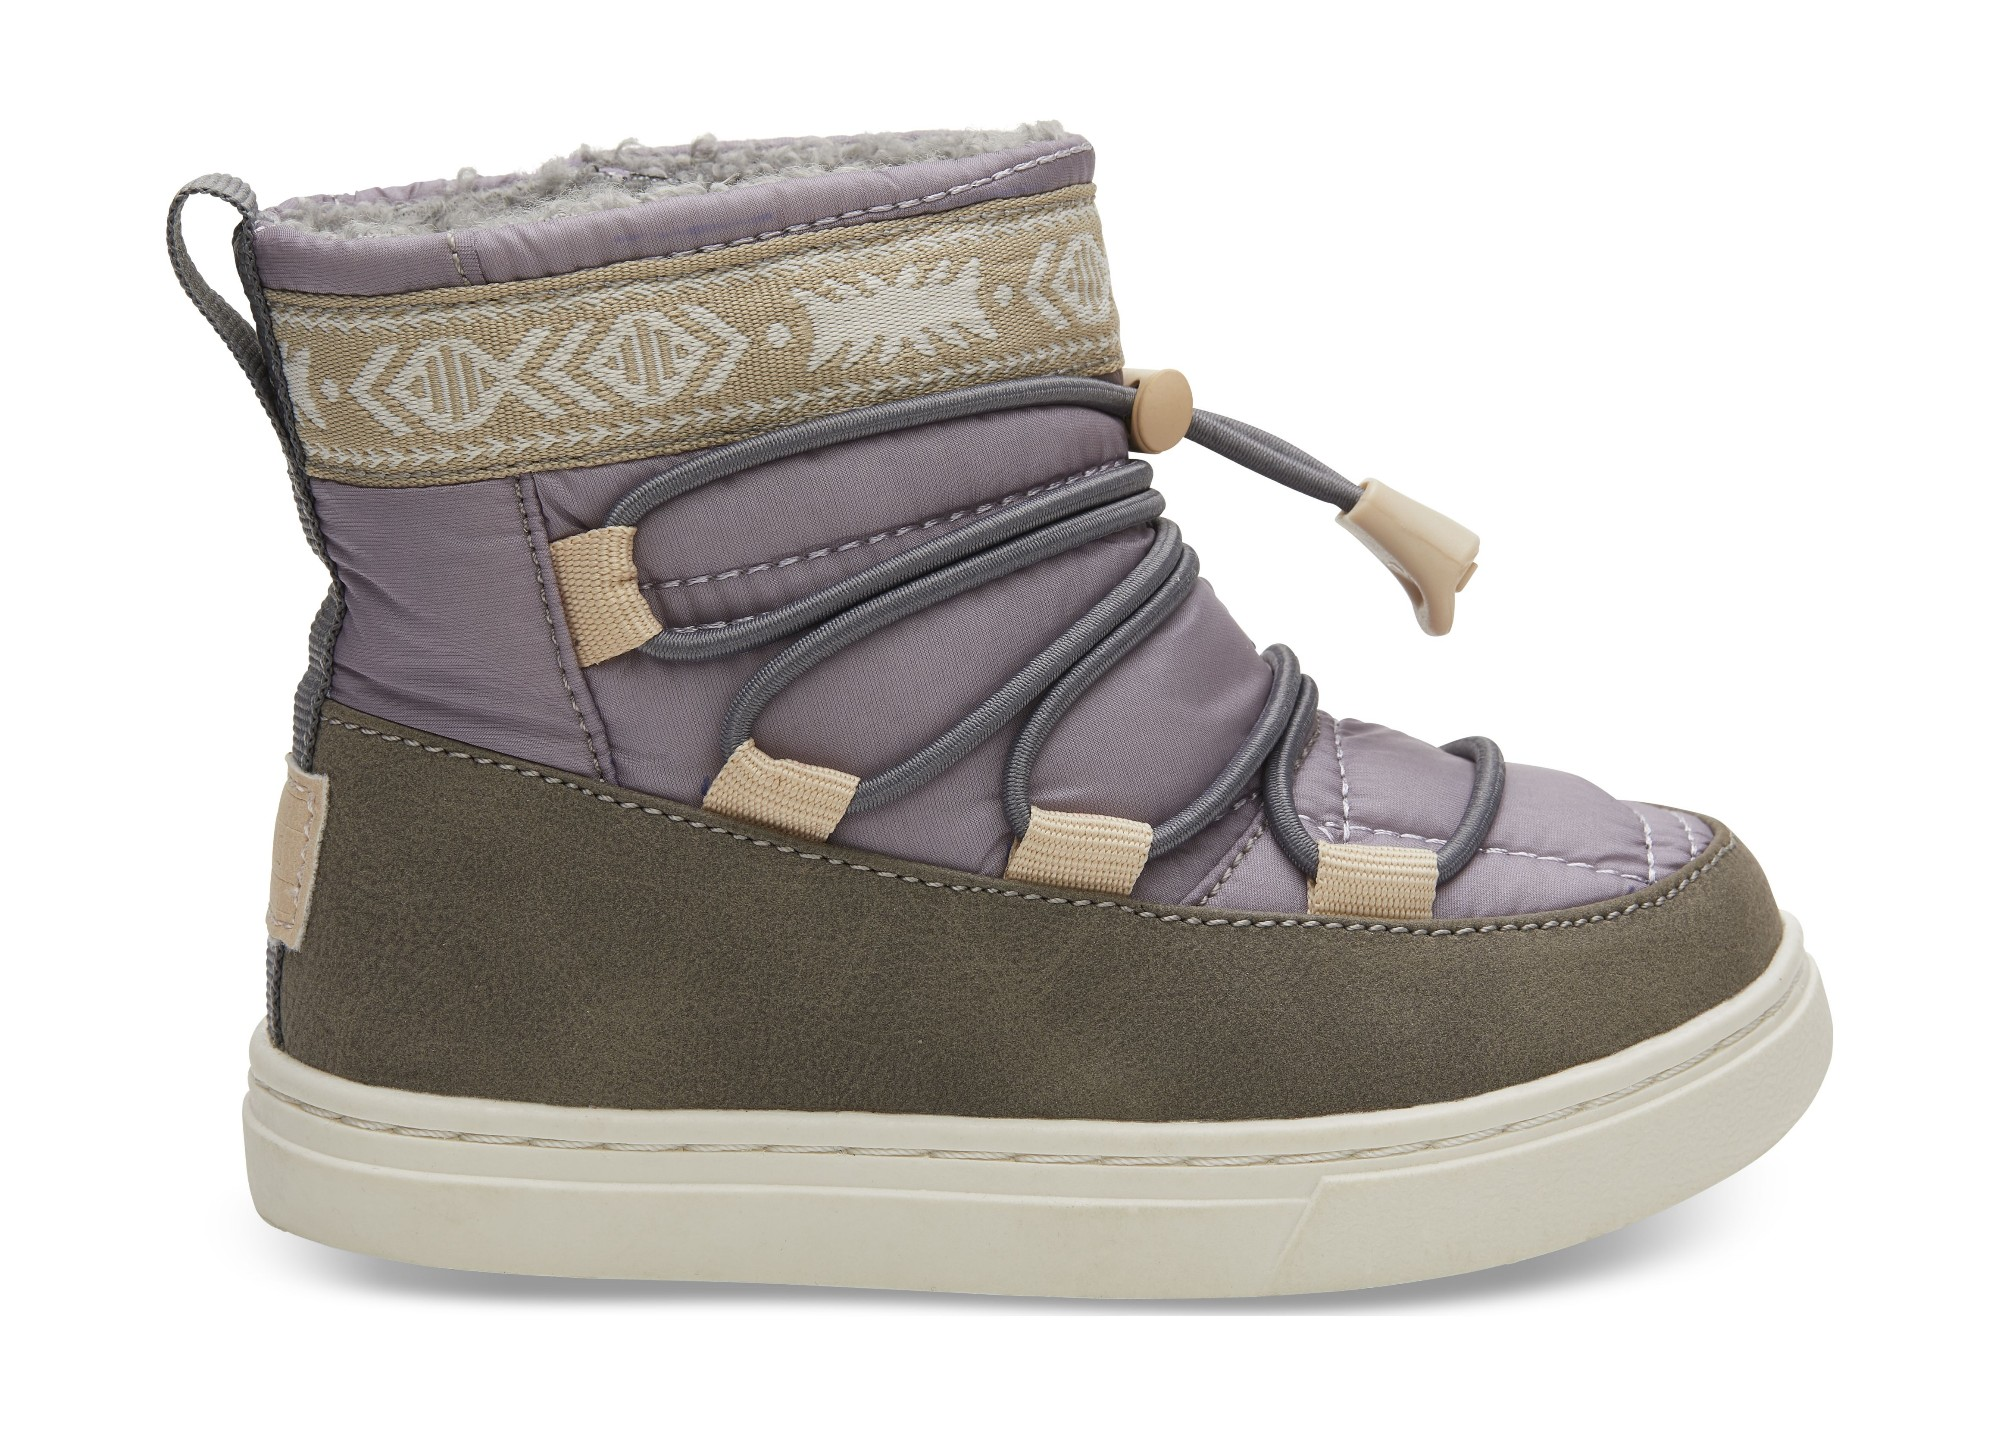 TOMS Quilted Synthetic Leather Kid's Alpine Boot Lavender 26